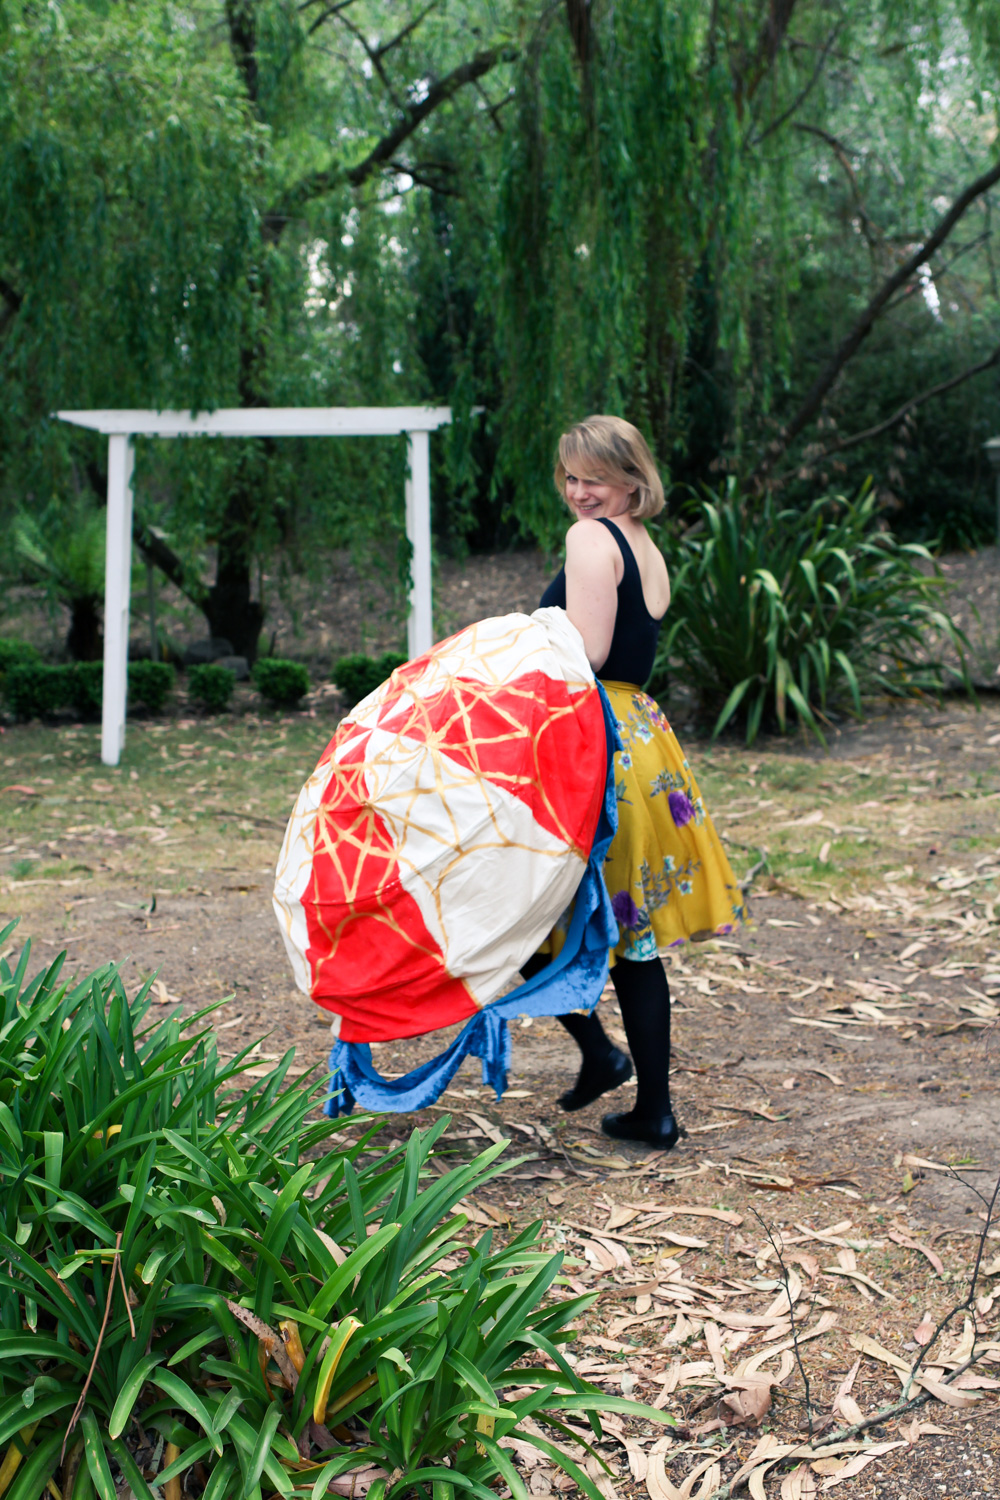 Liana of Finding Femme with a hot air balloon halloween costume, including tips for making one yourself.